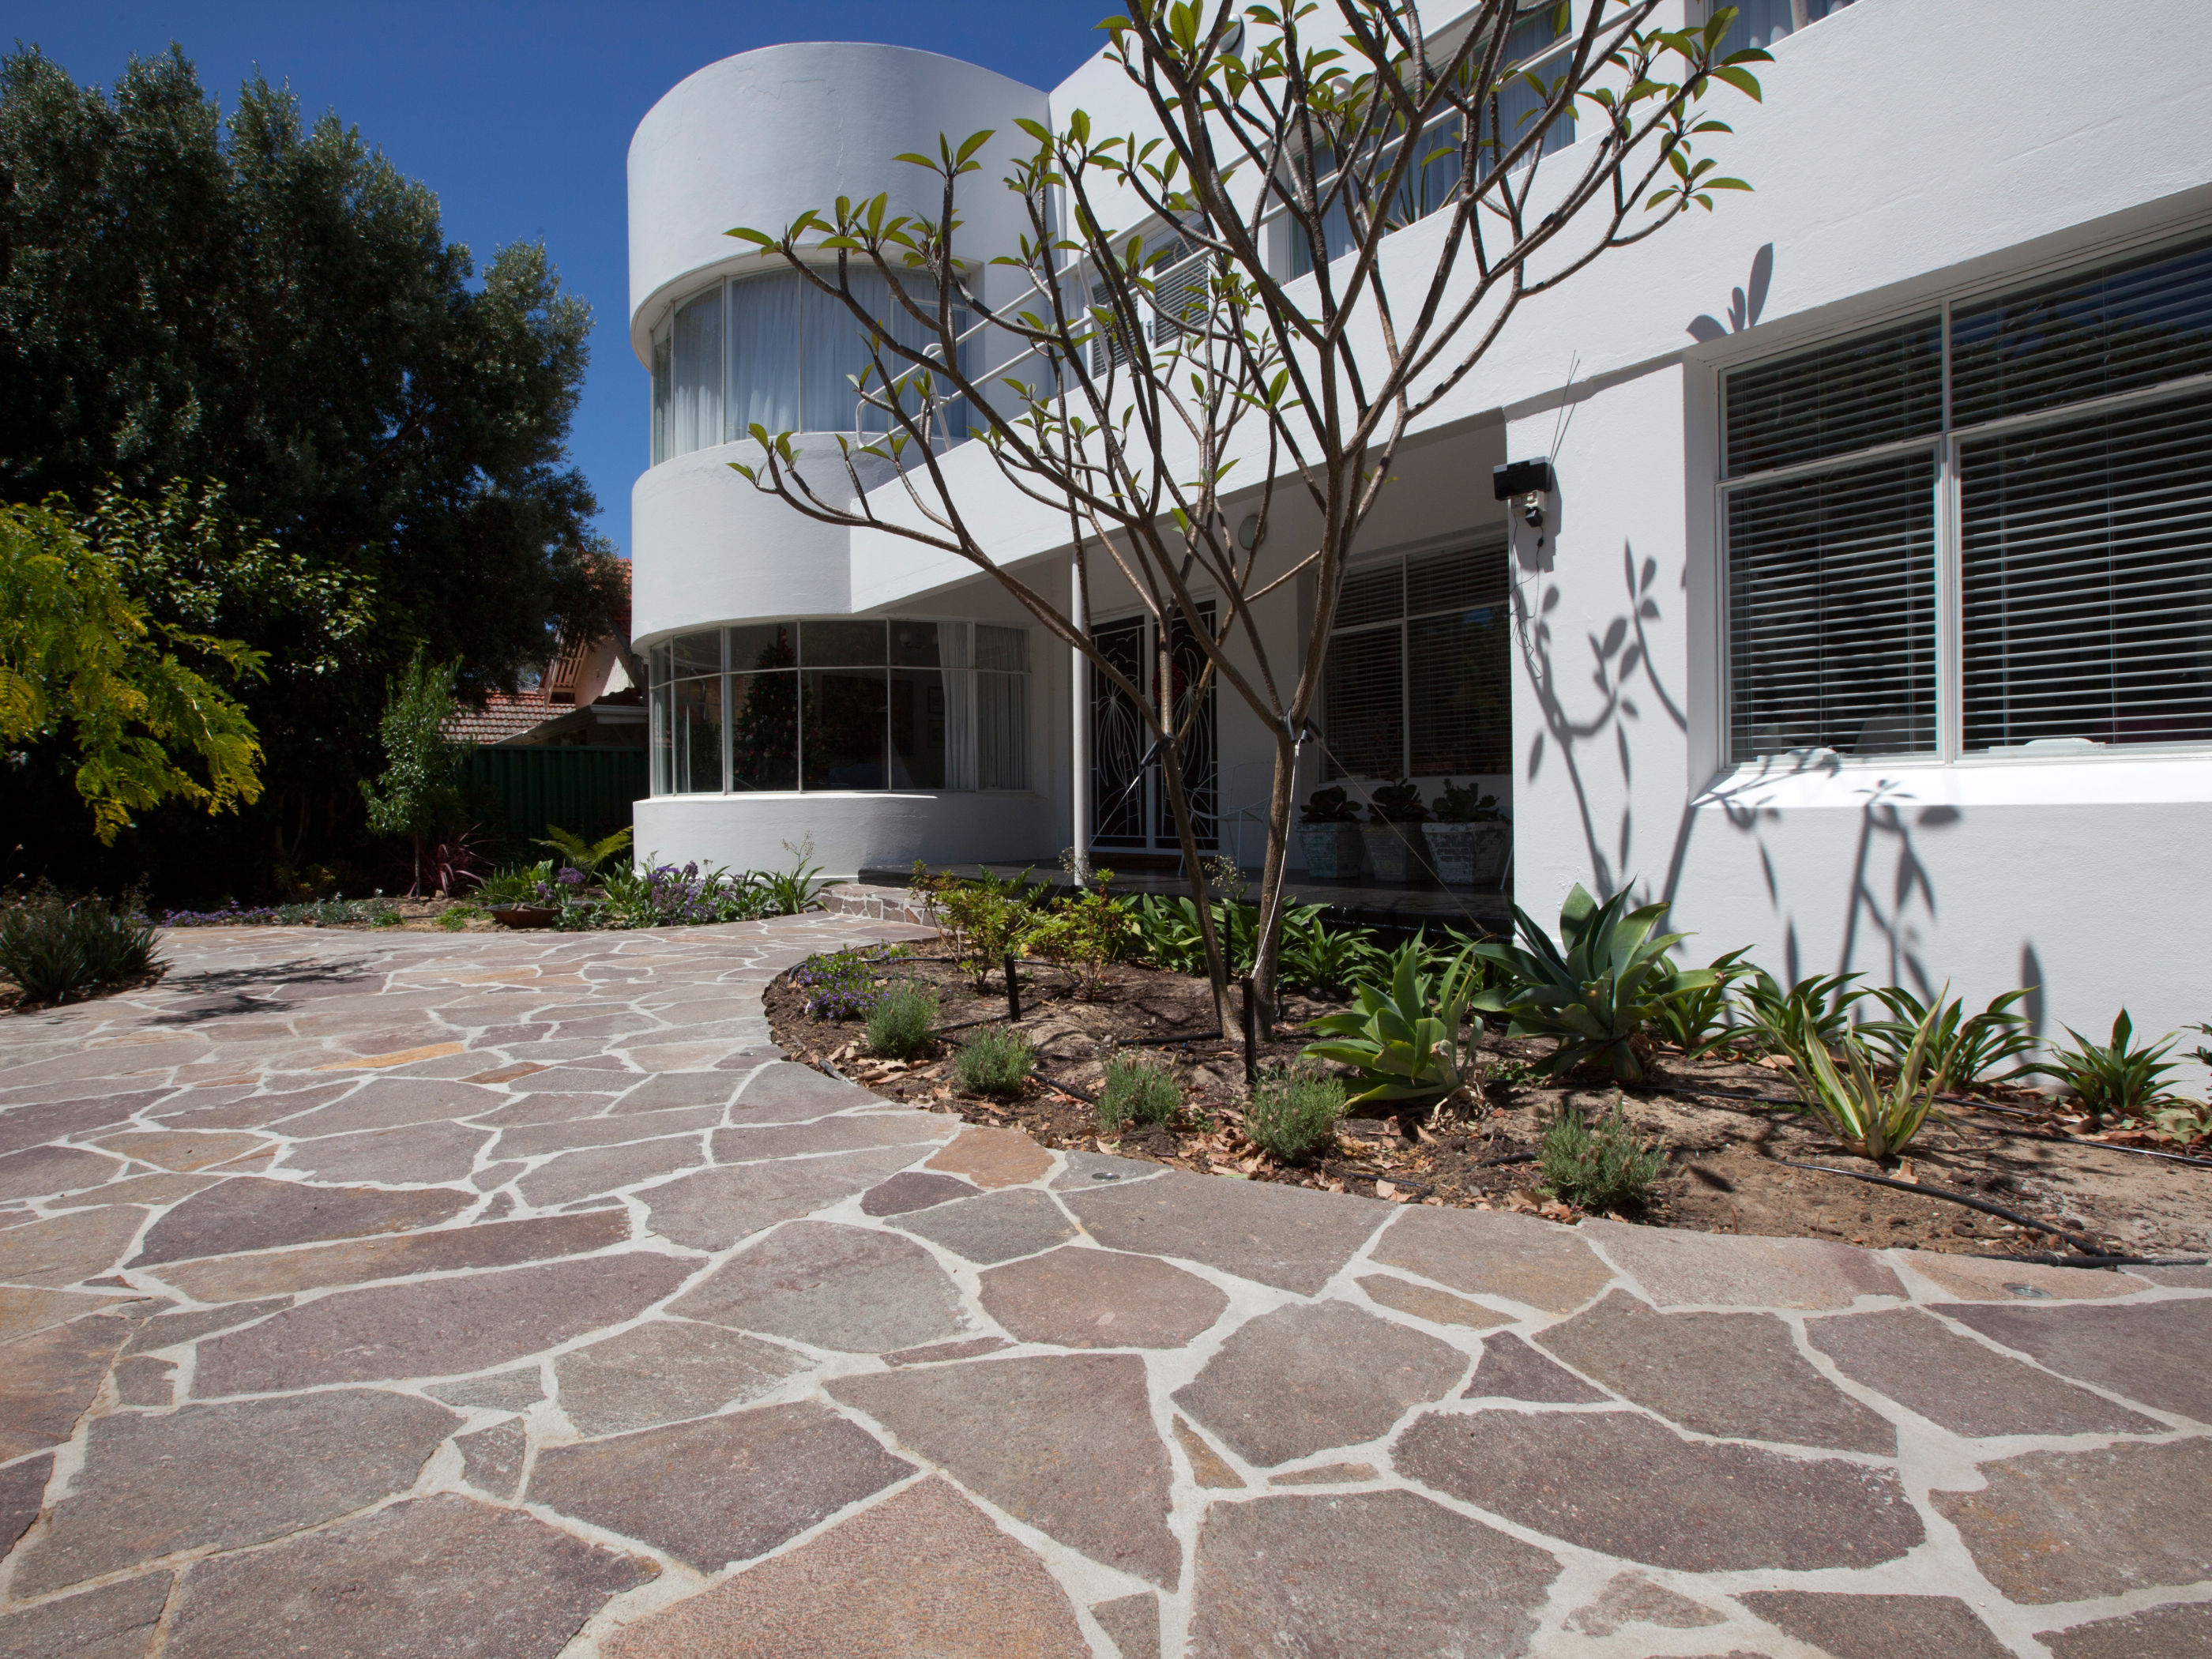 4 Key Things To Consider When Choosing Driveway Pavers